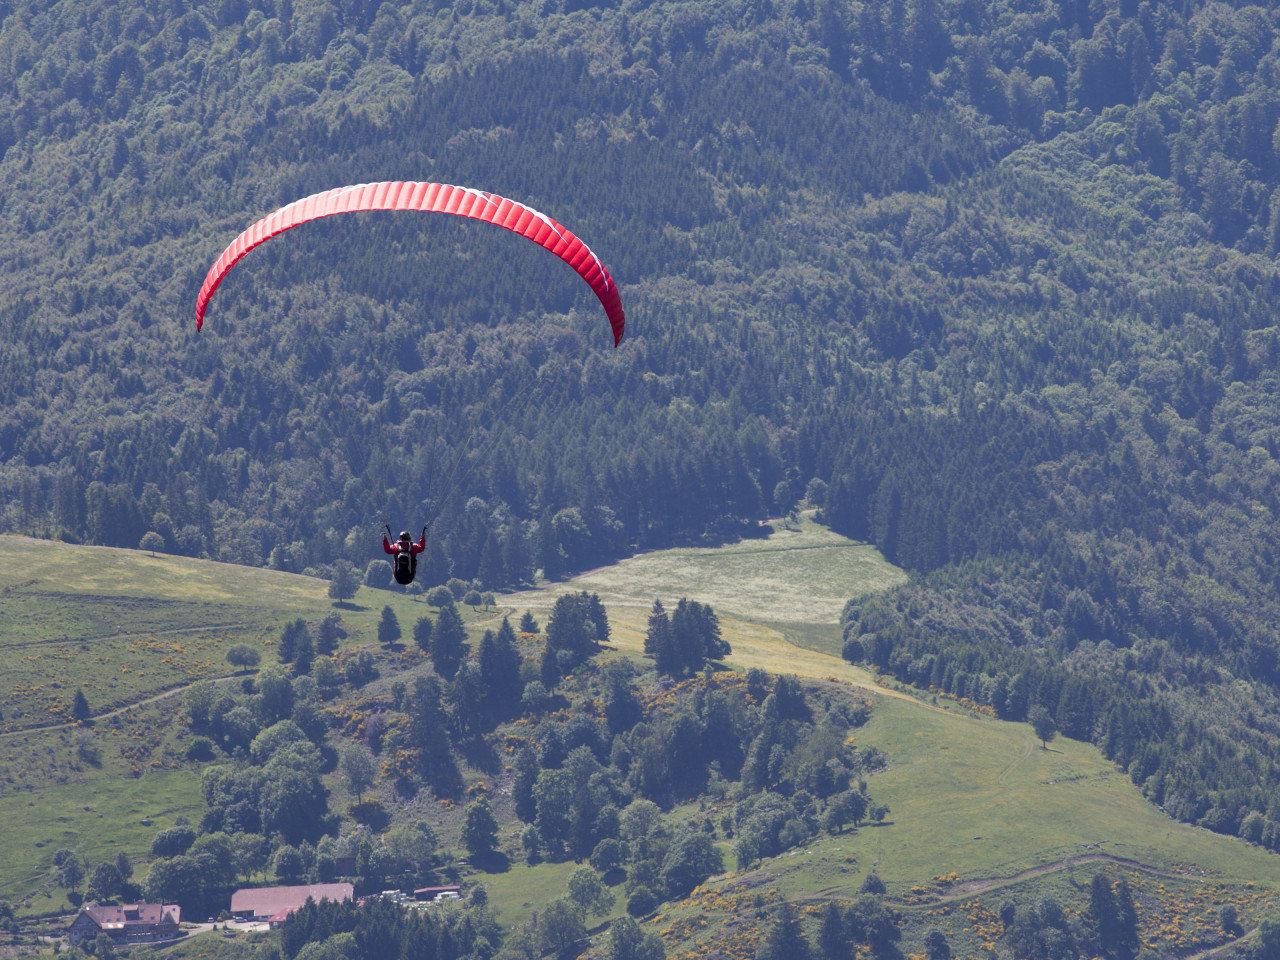 Paragliding wallpaper 1280x960